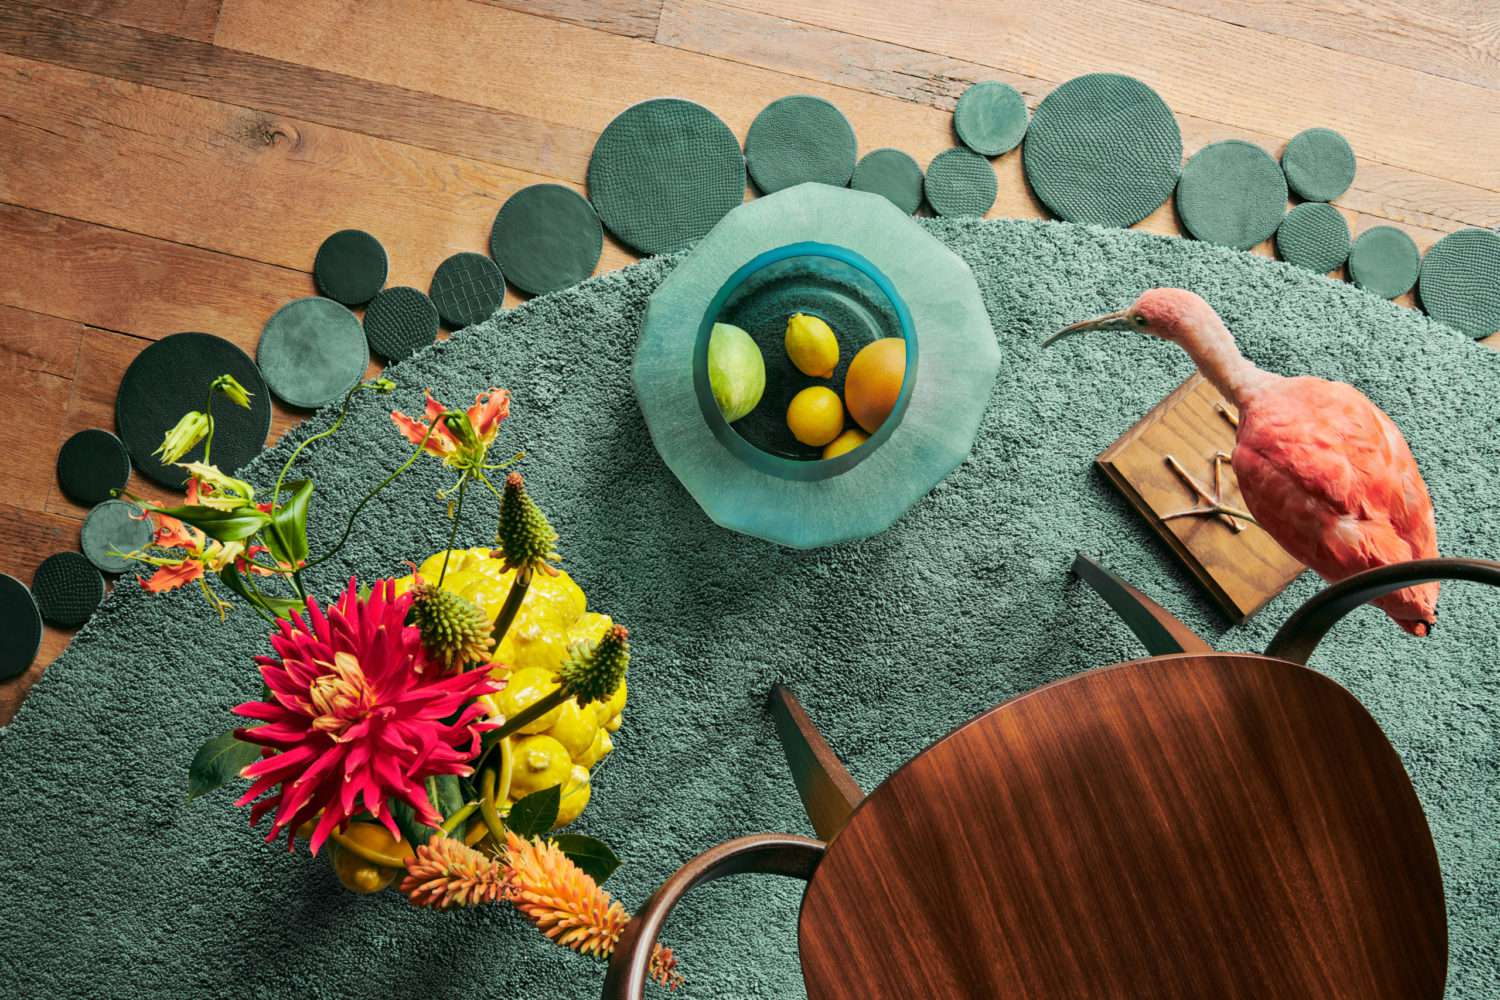 Floor Jewels Formation - vloerkleed groen - een design vloerkleed door Roelfien Vos en Van Besouw - Urban Jungle - woontrends 2021 - interieur trend 2021